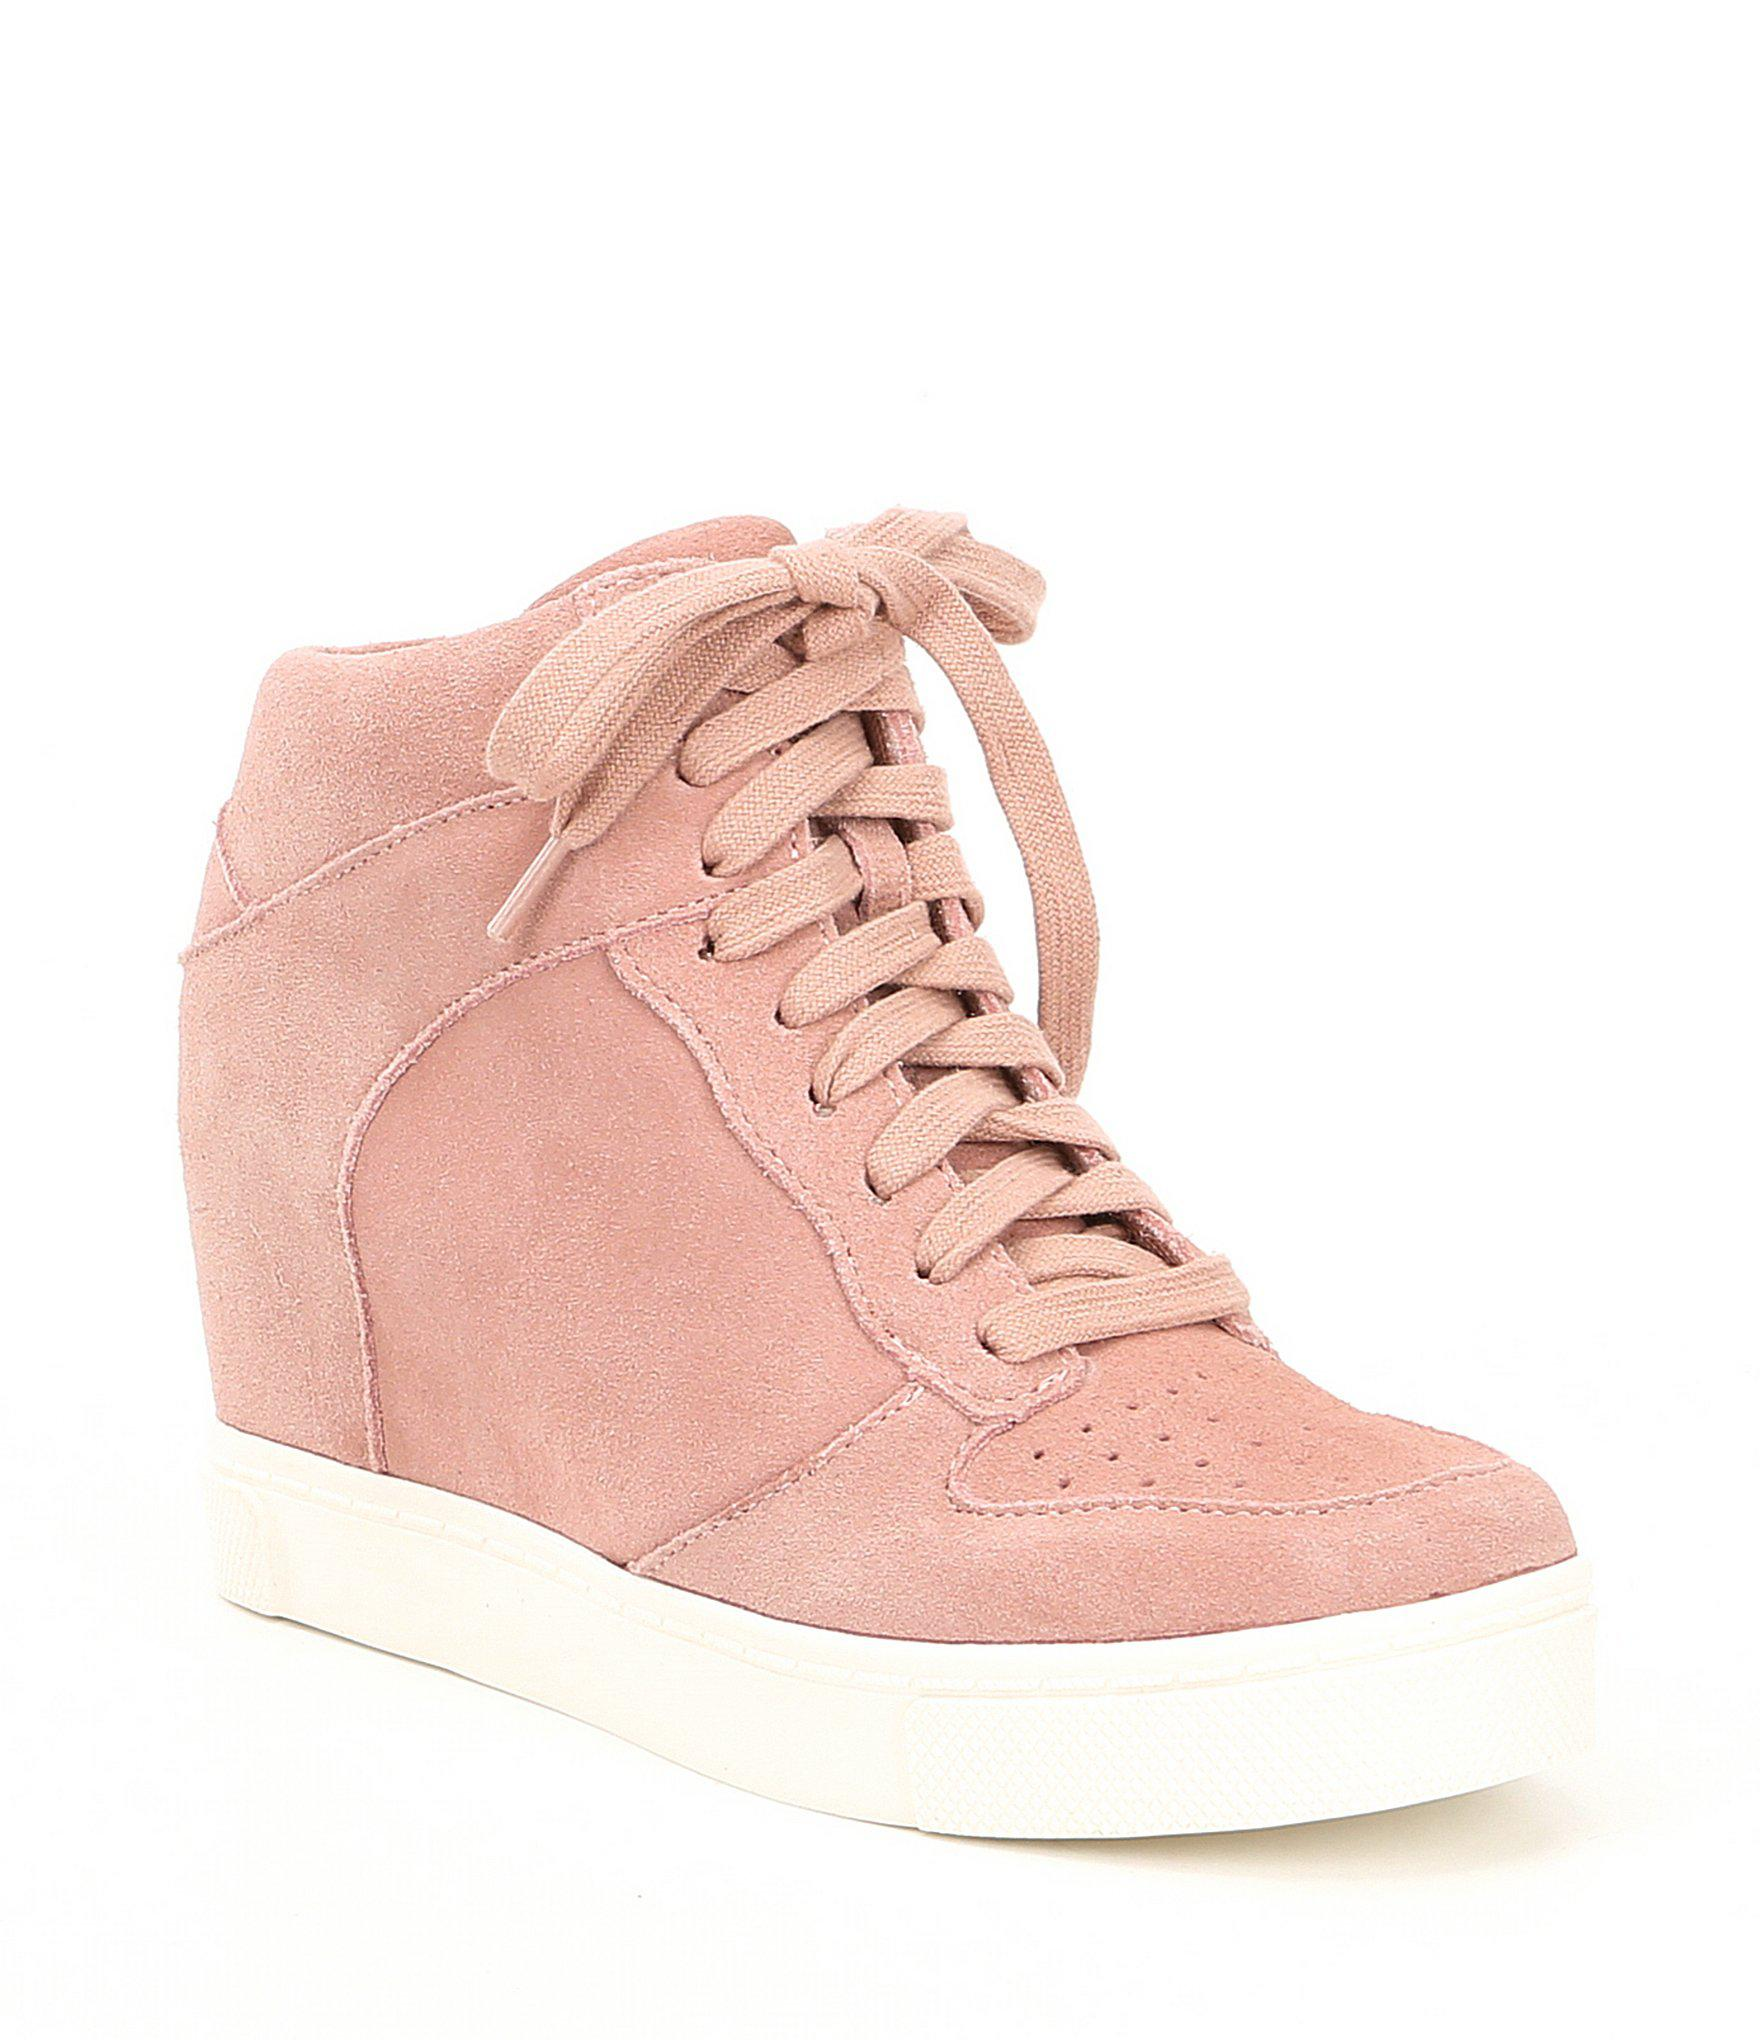 ff45aaccbd6 Lyst - Steve Madden Noah Suede Lace Up Wedge Sneakers in Pink